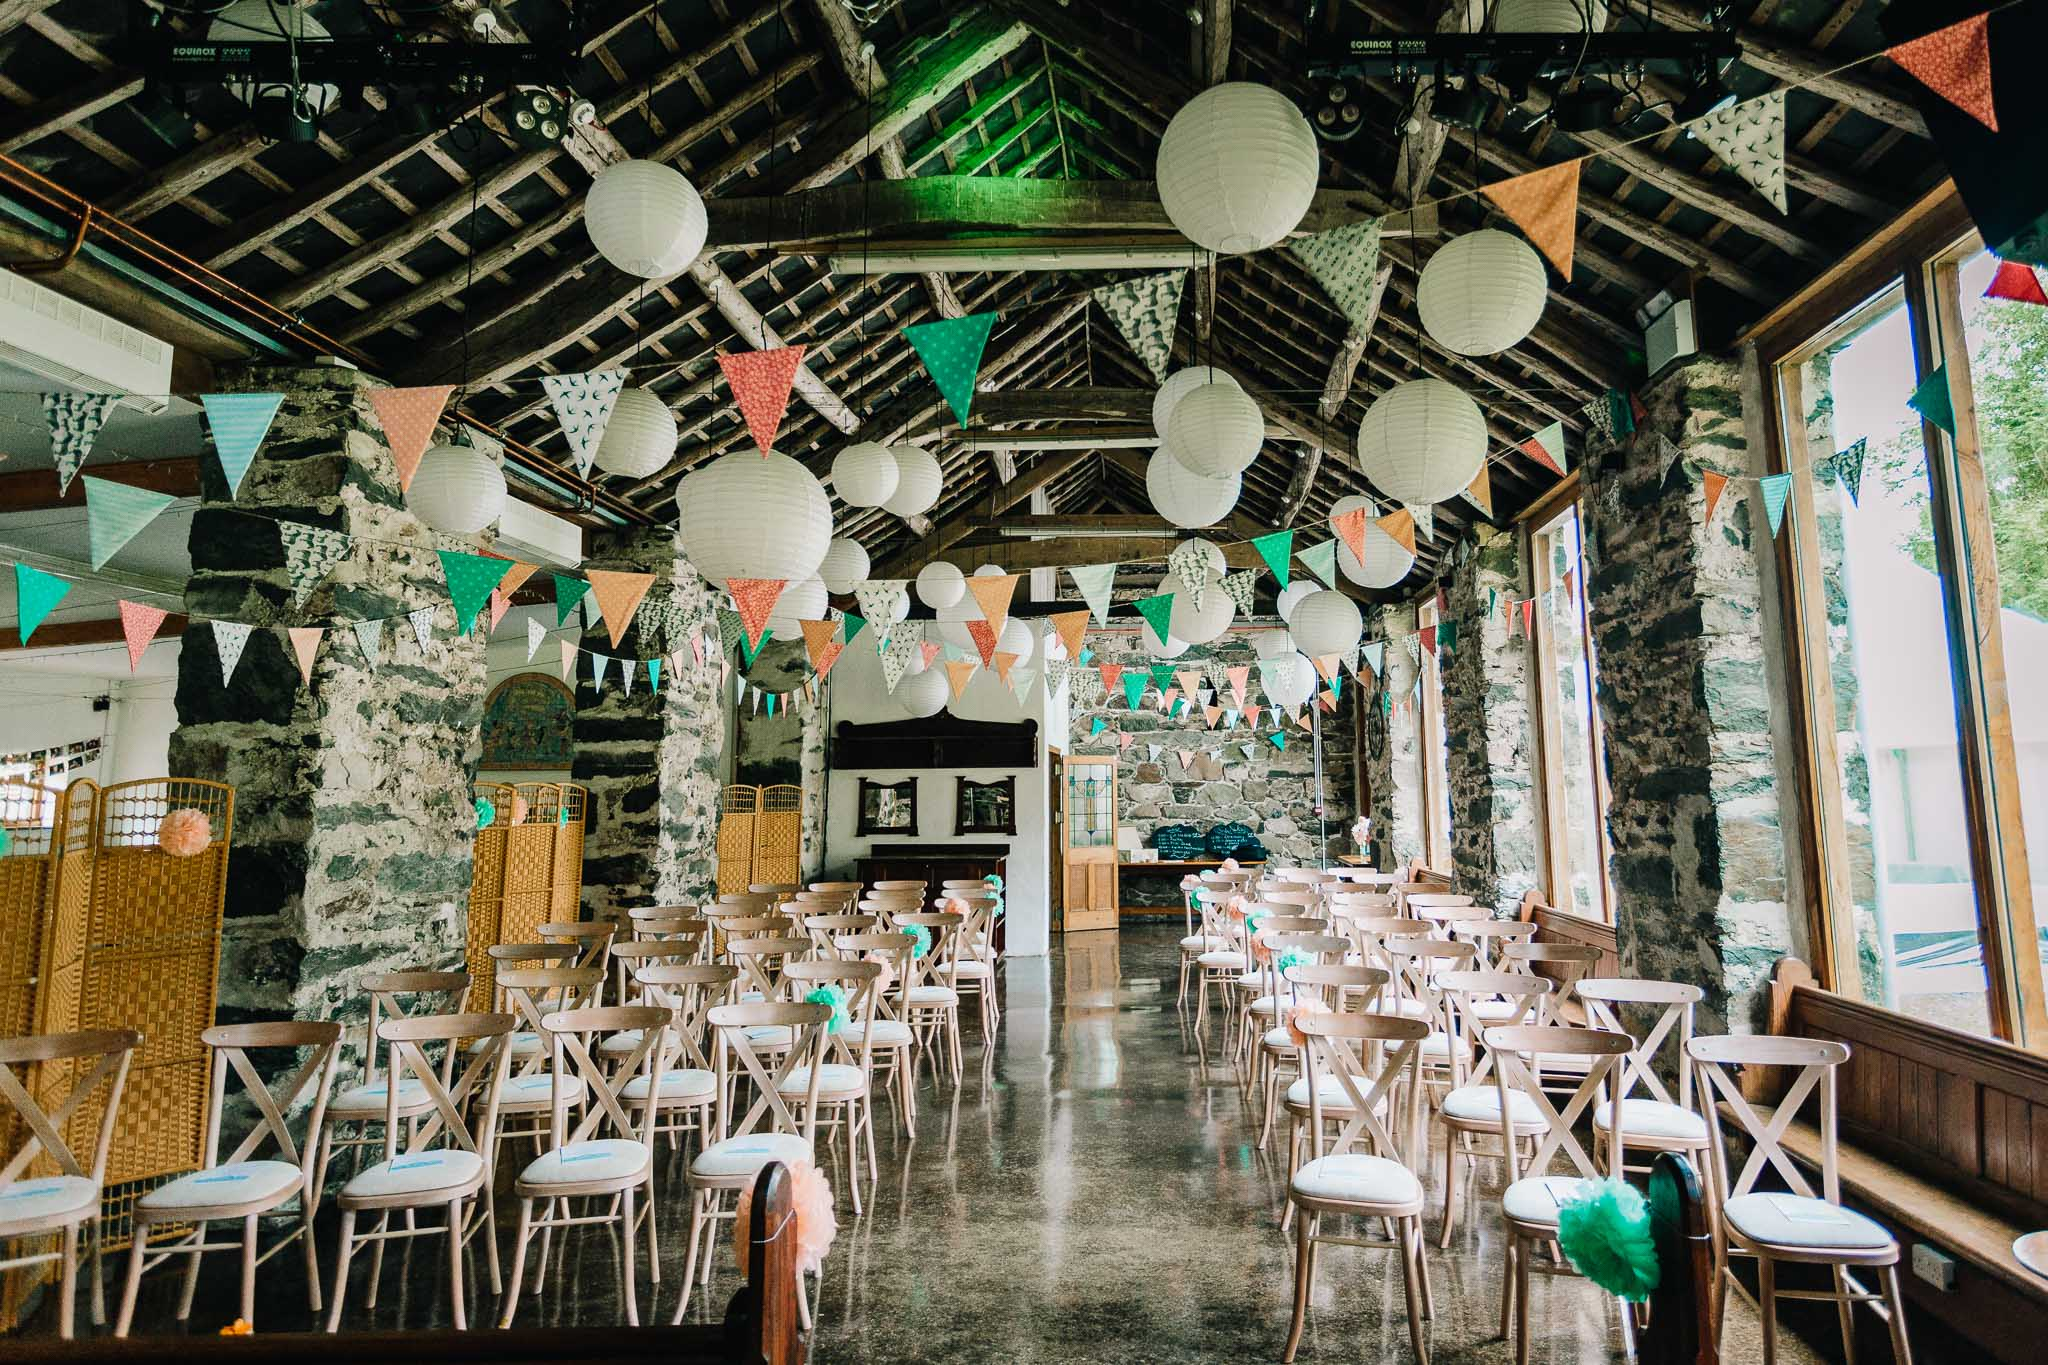 COUNTRY FAYRE WEDDING STYLING IN RUSTIC BARN